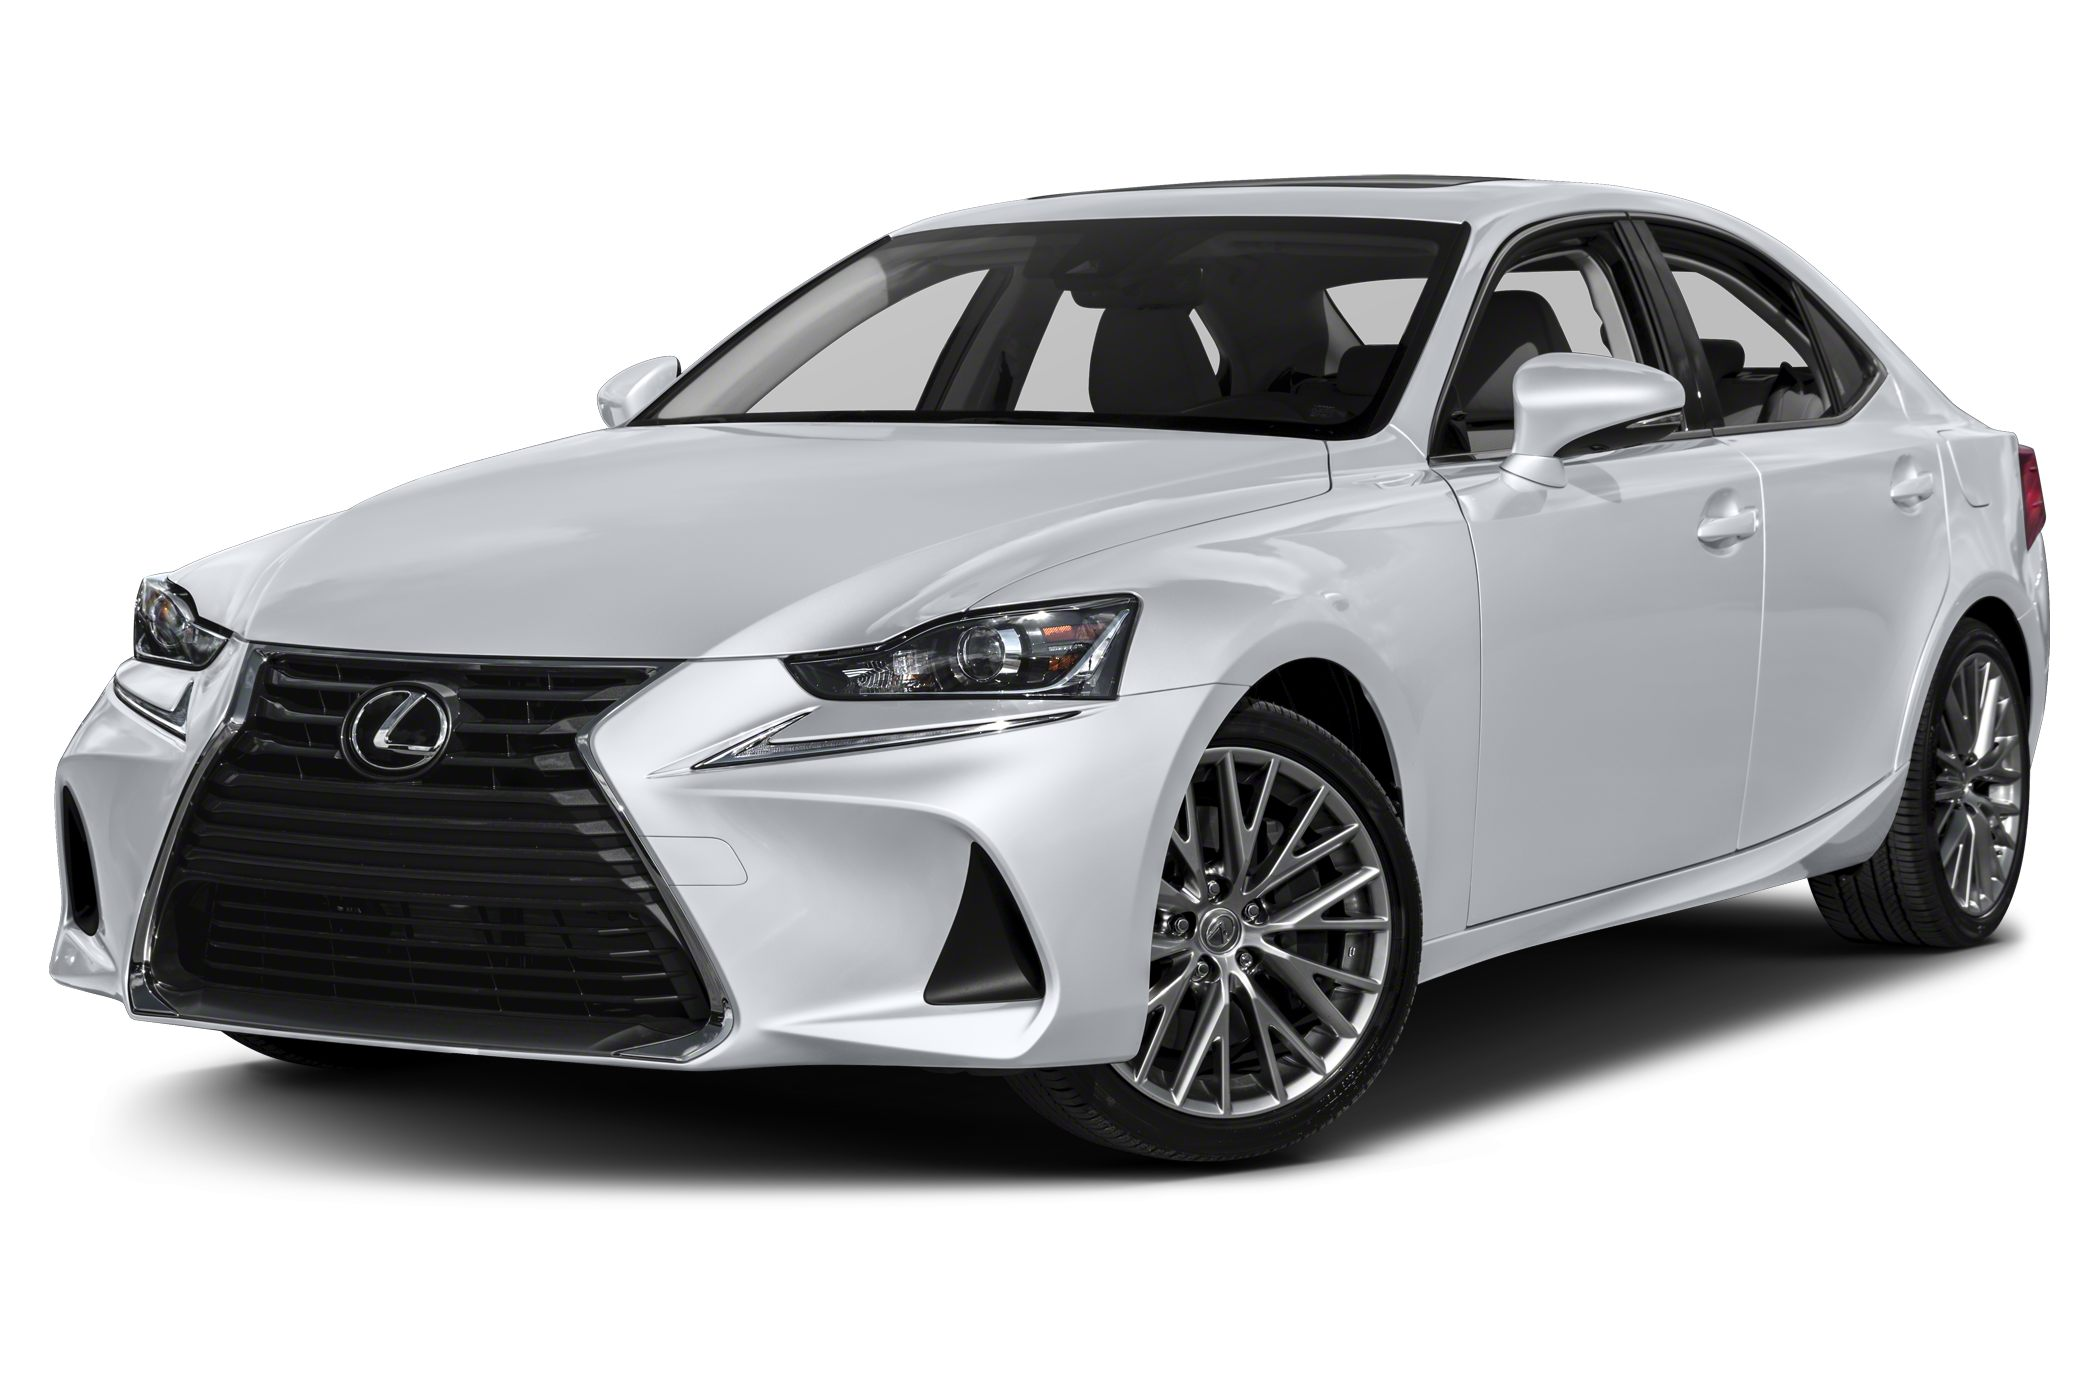 2018 Lexus IS300 - Emporium Auto Lease